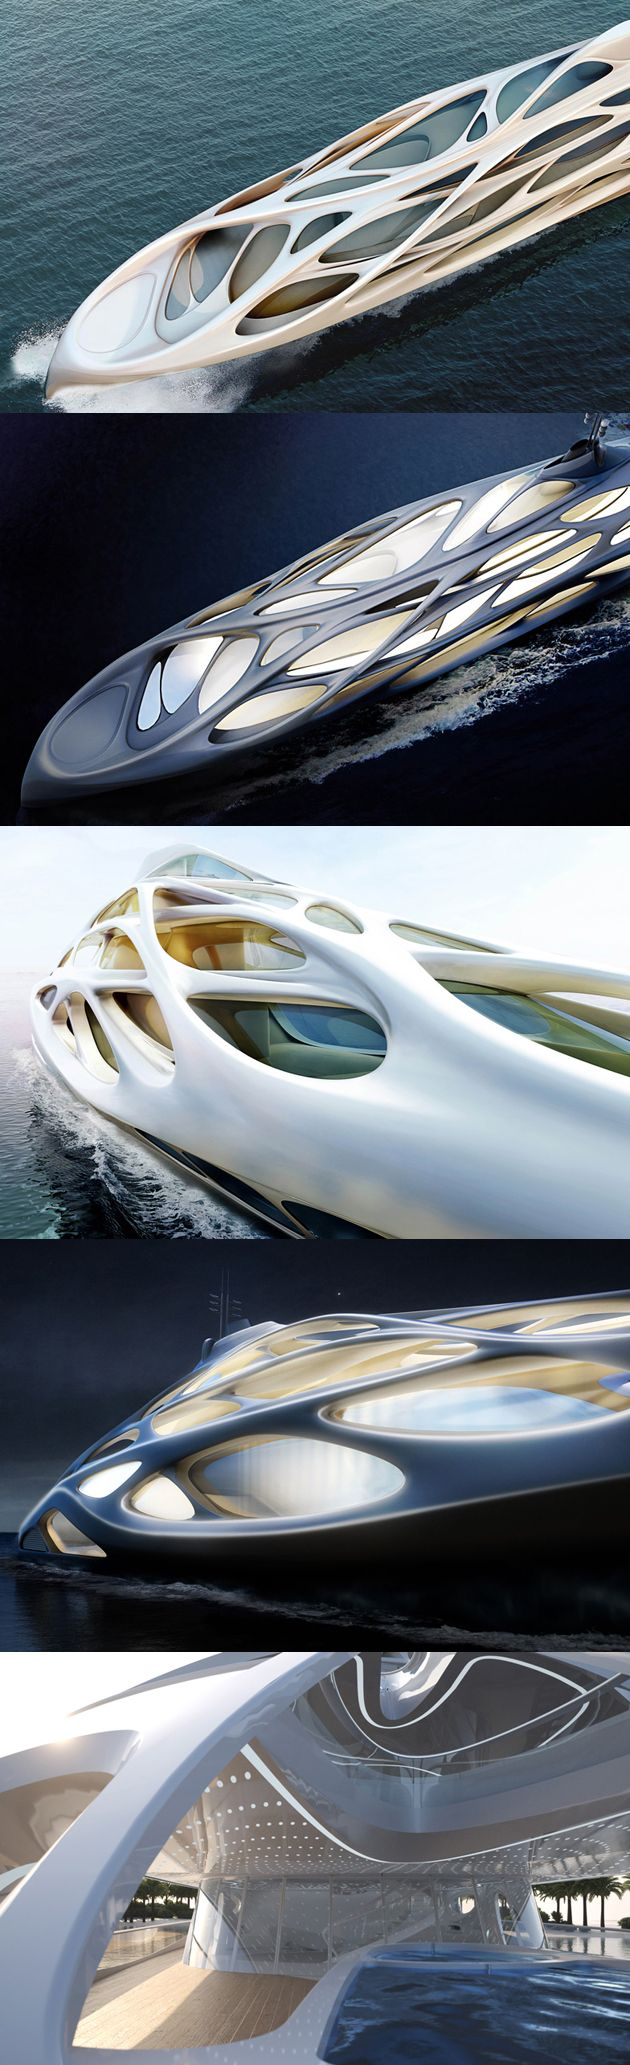 A perfect example of good architecture not in a building:: Zaha Hadid Designs a Superyacht for shipbuilding company Blohm+Voss, reaching 128 meters in length, and a supporting structure resembling the organic ecosystem below. The form appears dynamic, resembling the flow of water. Paired with the clear, clean, and white coated aesthetics, this yacht fits right in with the water in which it glides across…